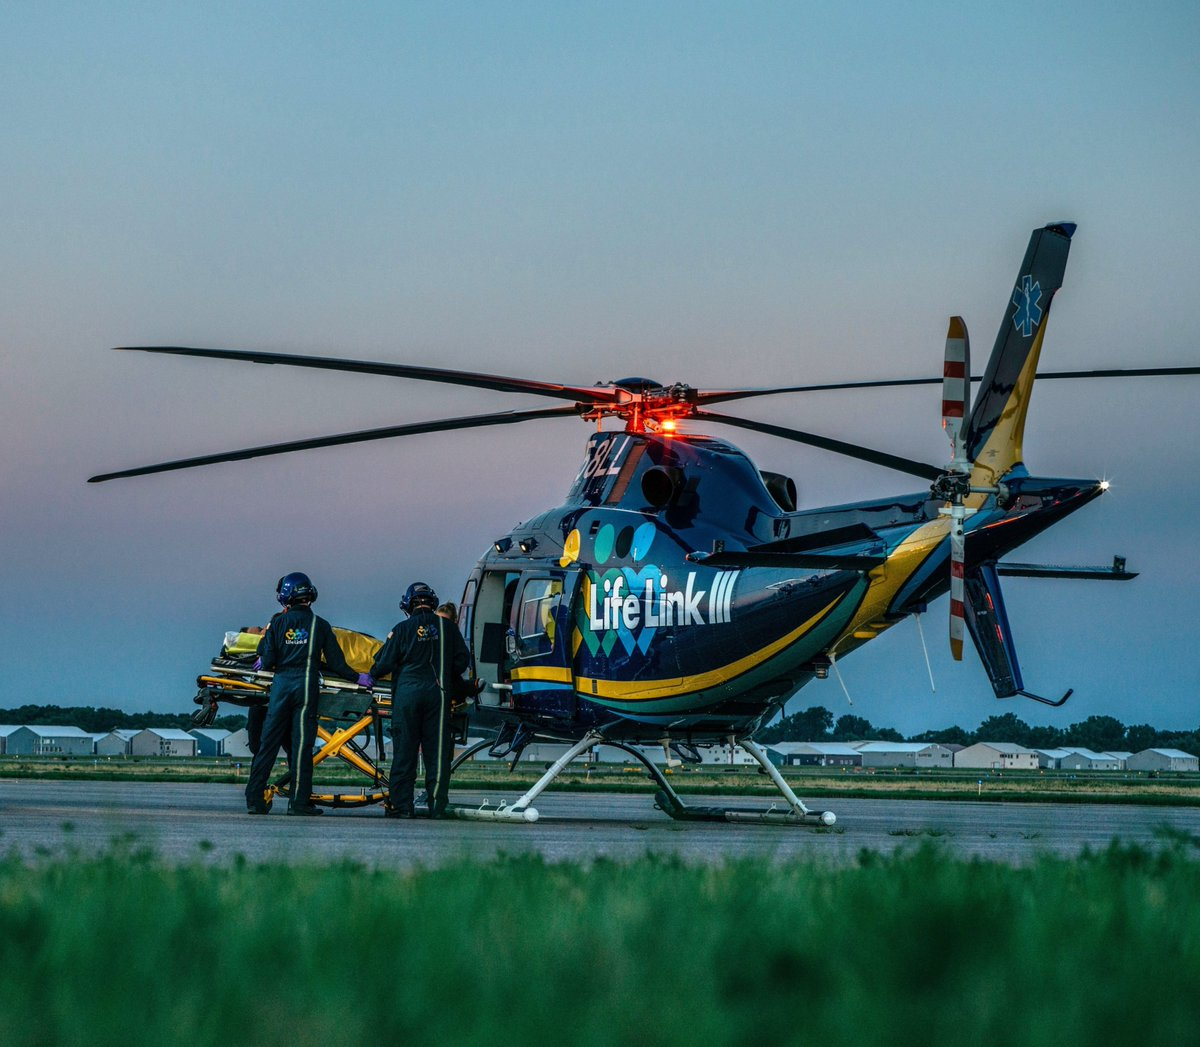 🔴#PressRelease Today we announce that #EMS operator @LifeLinkIII has placed an order for one IFR-certified #AW119 single engine helicopter with a future option for a second aircraft https://t.co/3RnLPNNS0Q https://t.co/y8cqtZRCfB